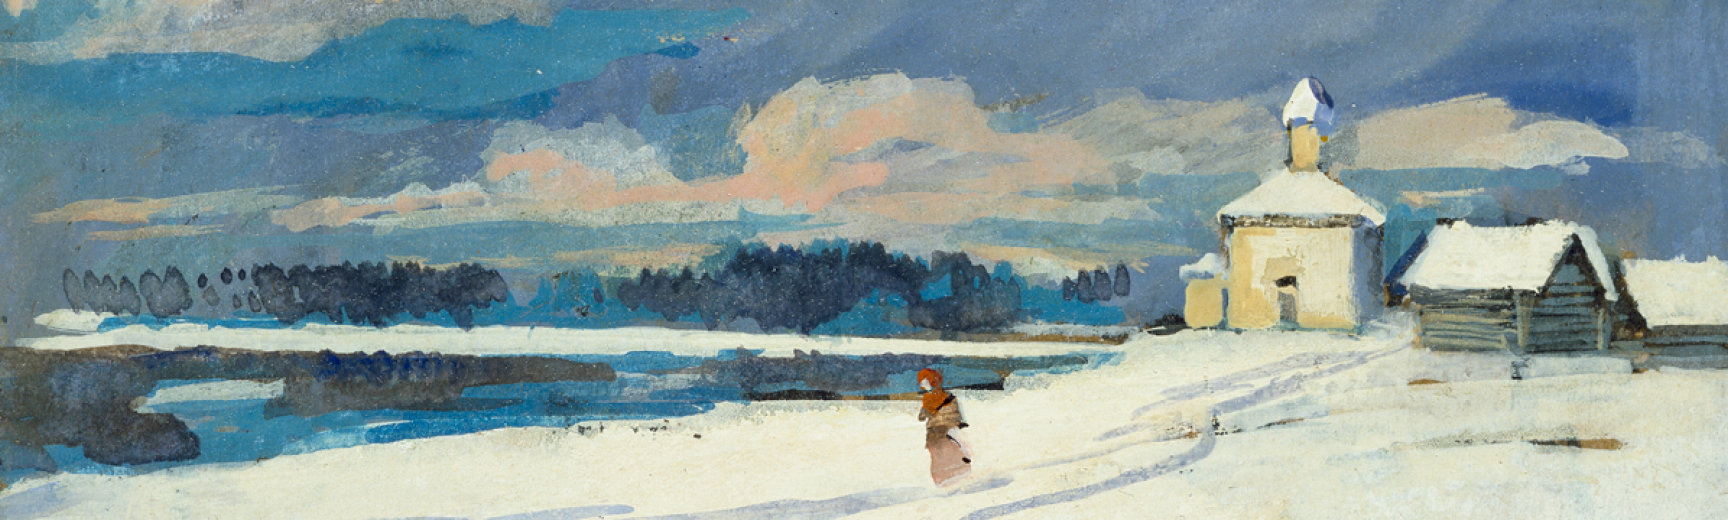 korovin winter landscape wa 1960 36 3 detail